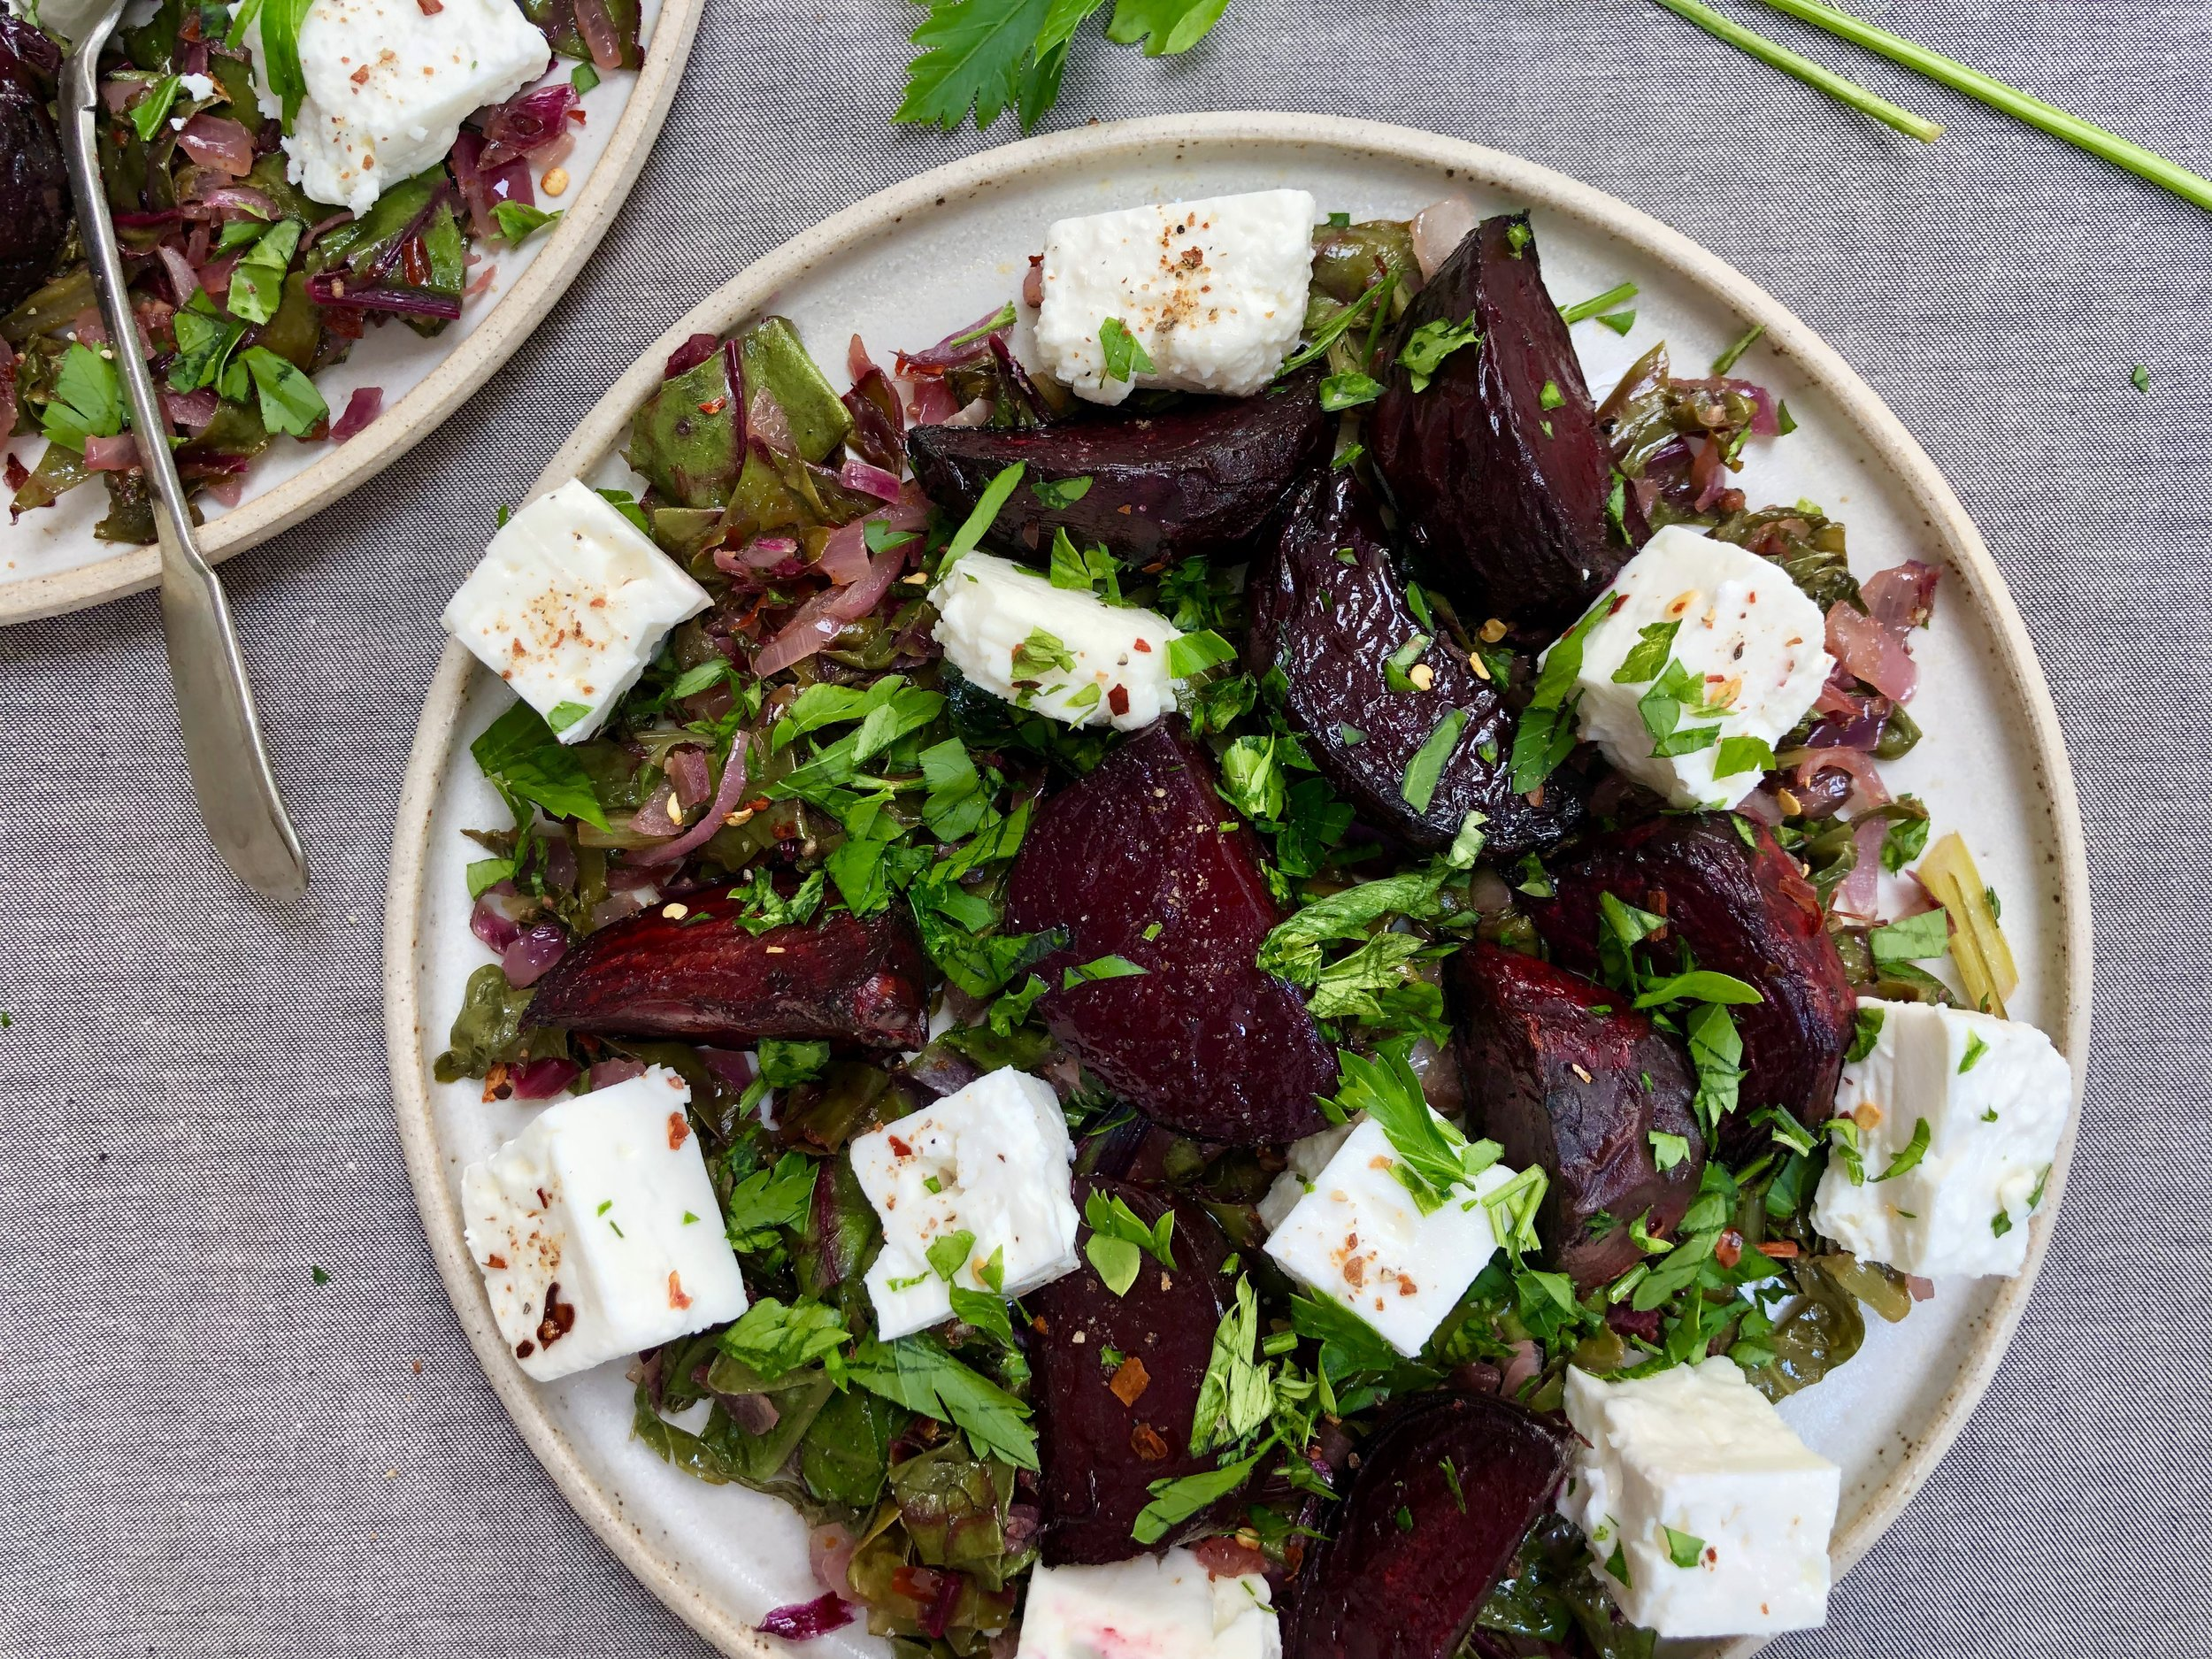 Roasted Beetroot, Wilted Beet Greens, Spinach and Feta